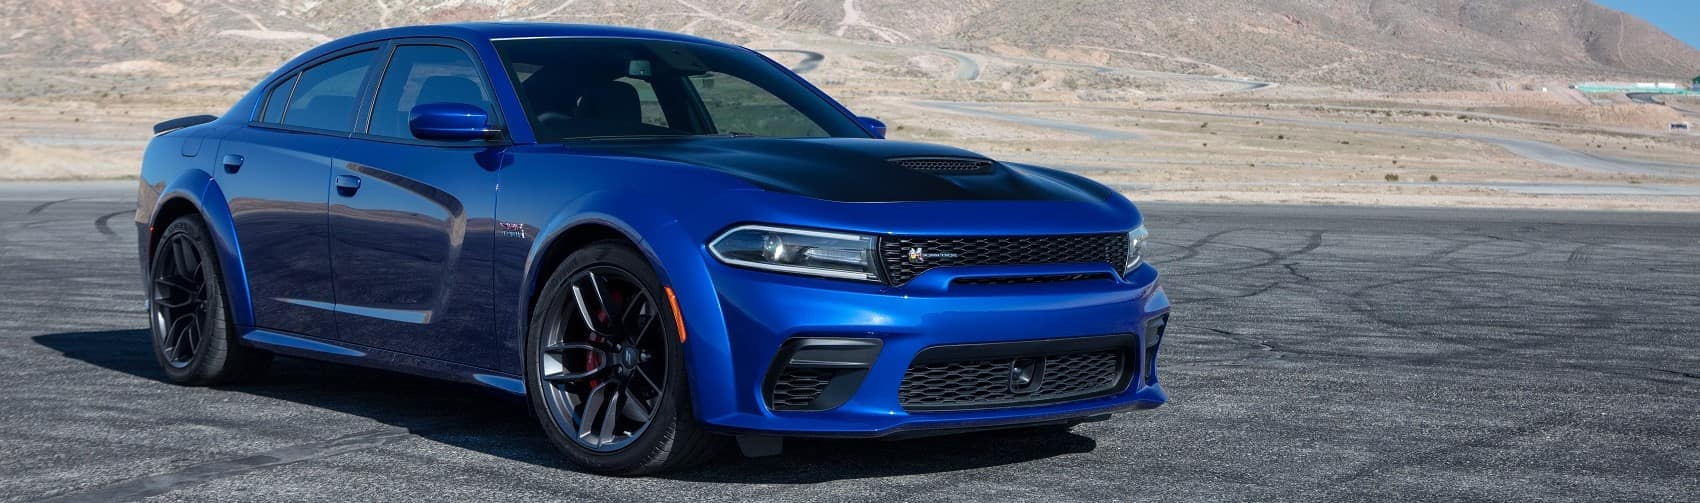 Dodge Charger widebody in front of western mountains banner